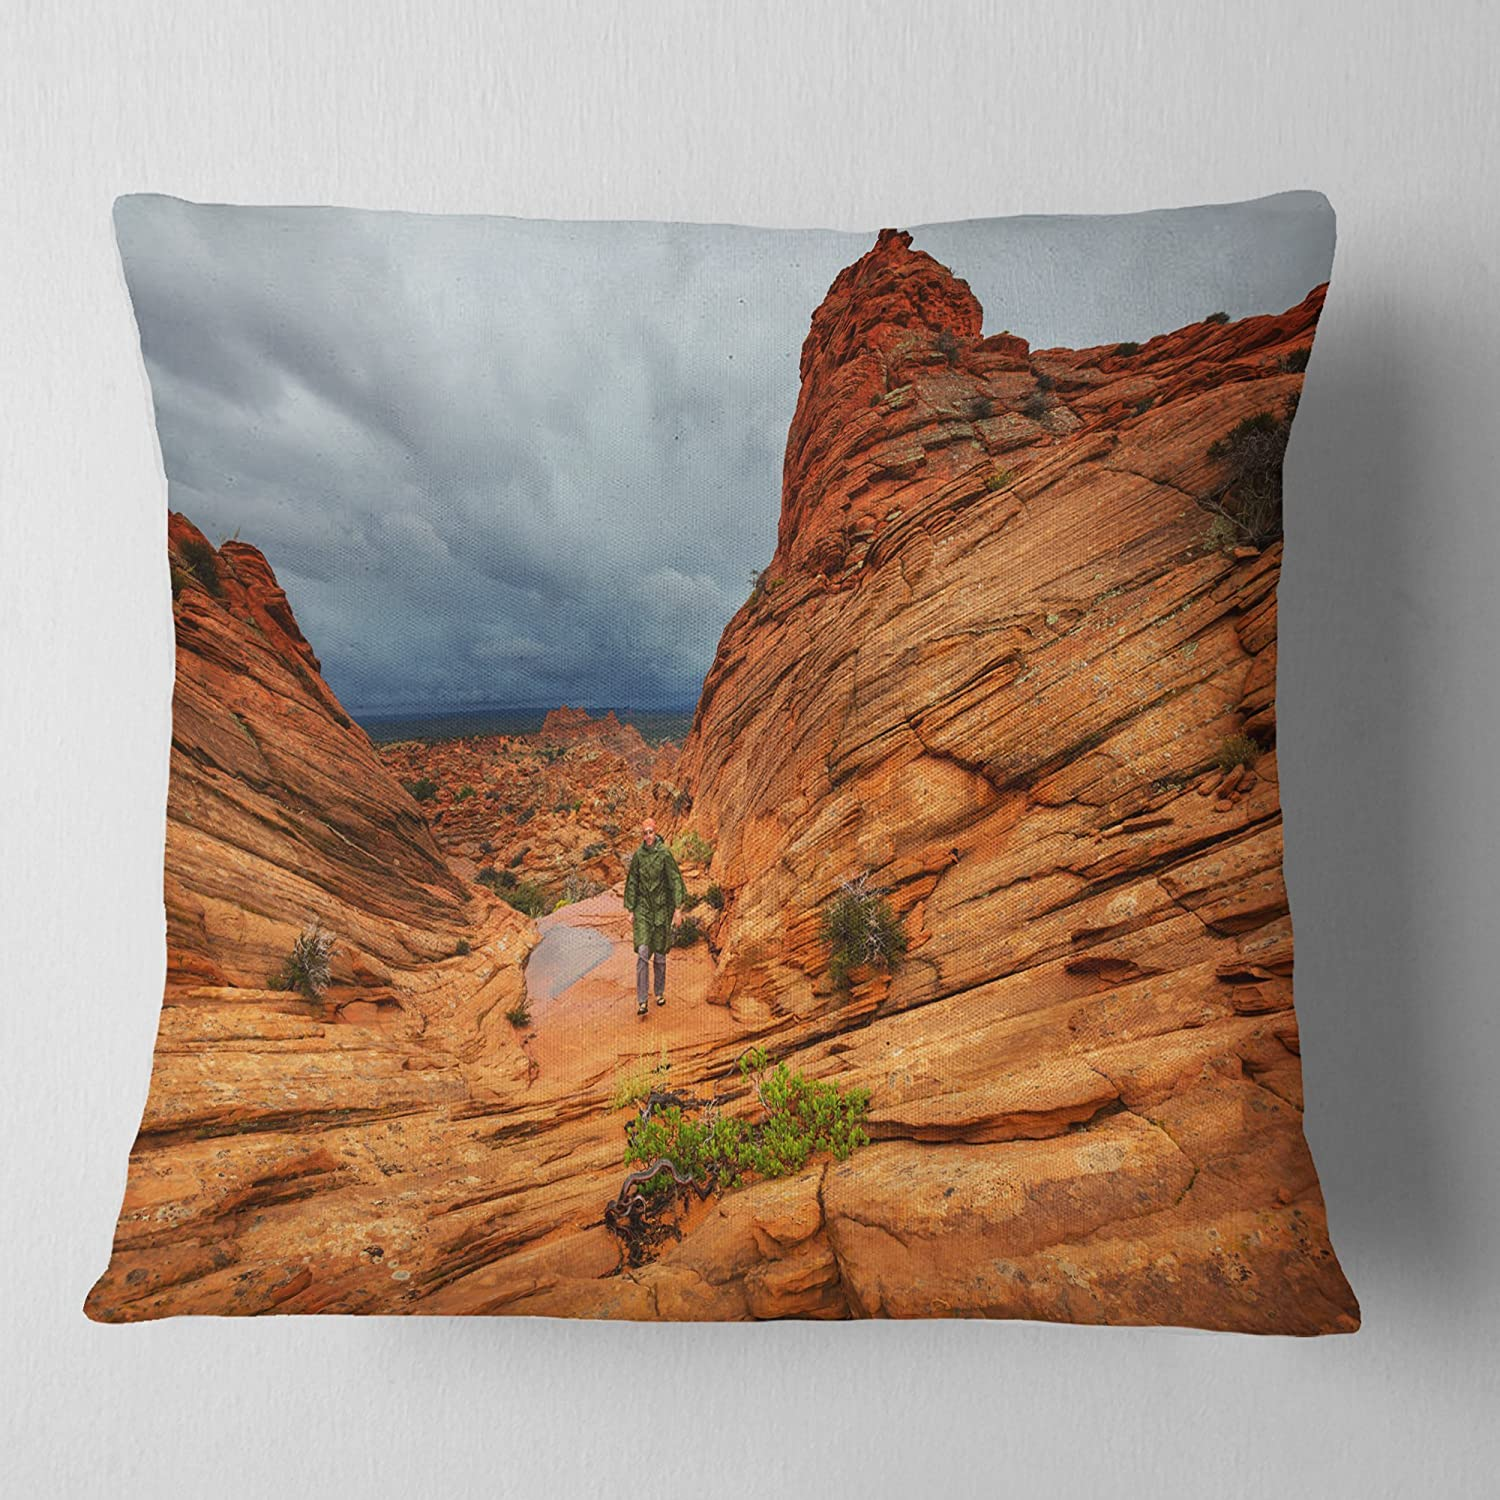 Designart Vermillion Cliffs Wilderness Landscape Printed Throw Cushion Pillow Cover For Living Room Sofa 18 In X 18 In Arts Crafts Sewing